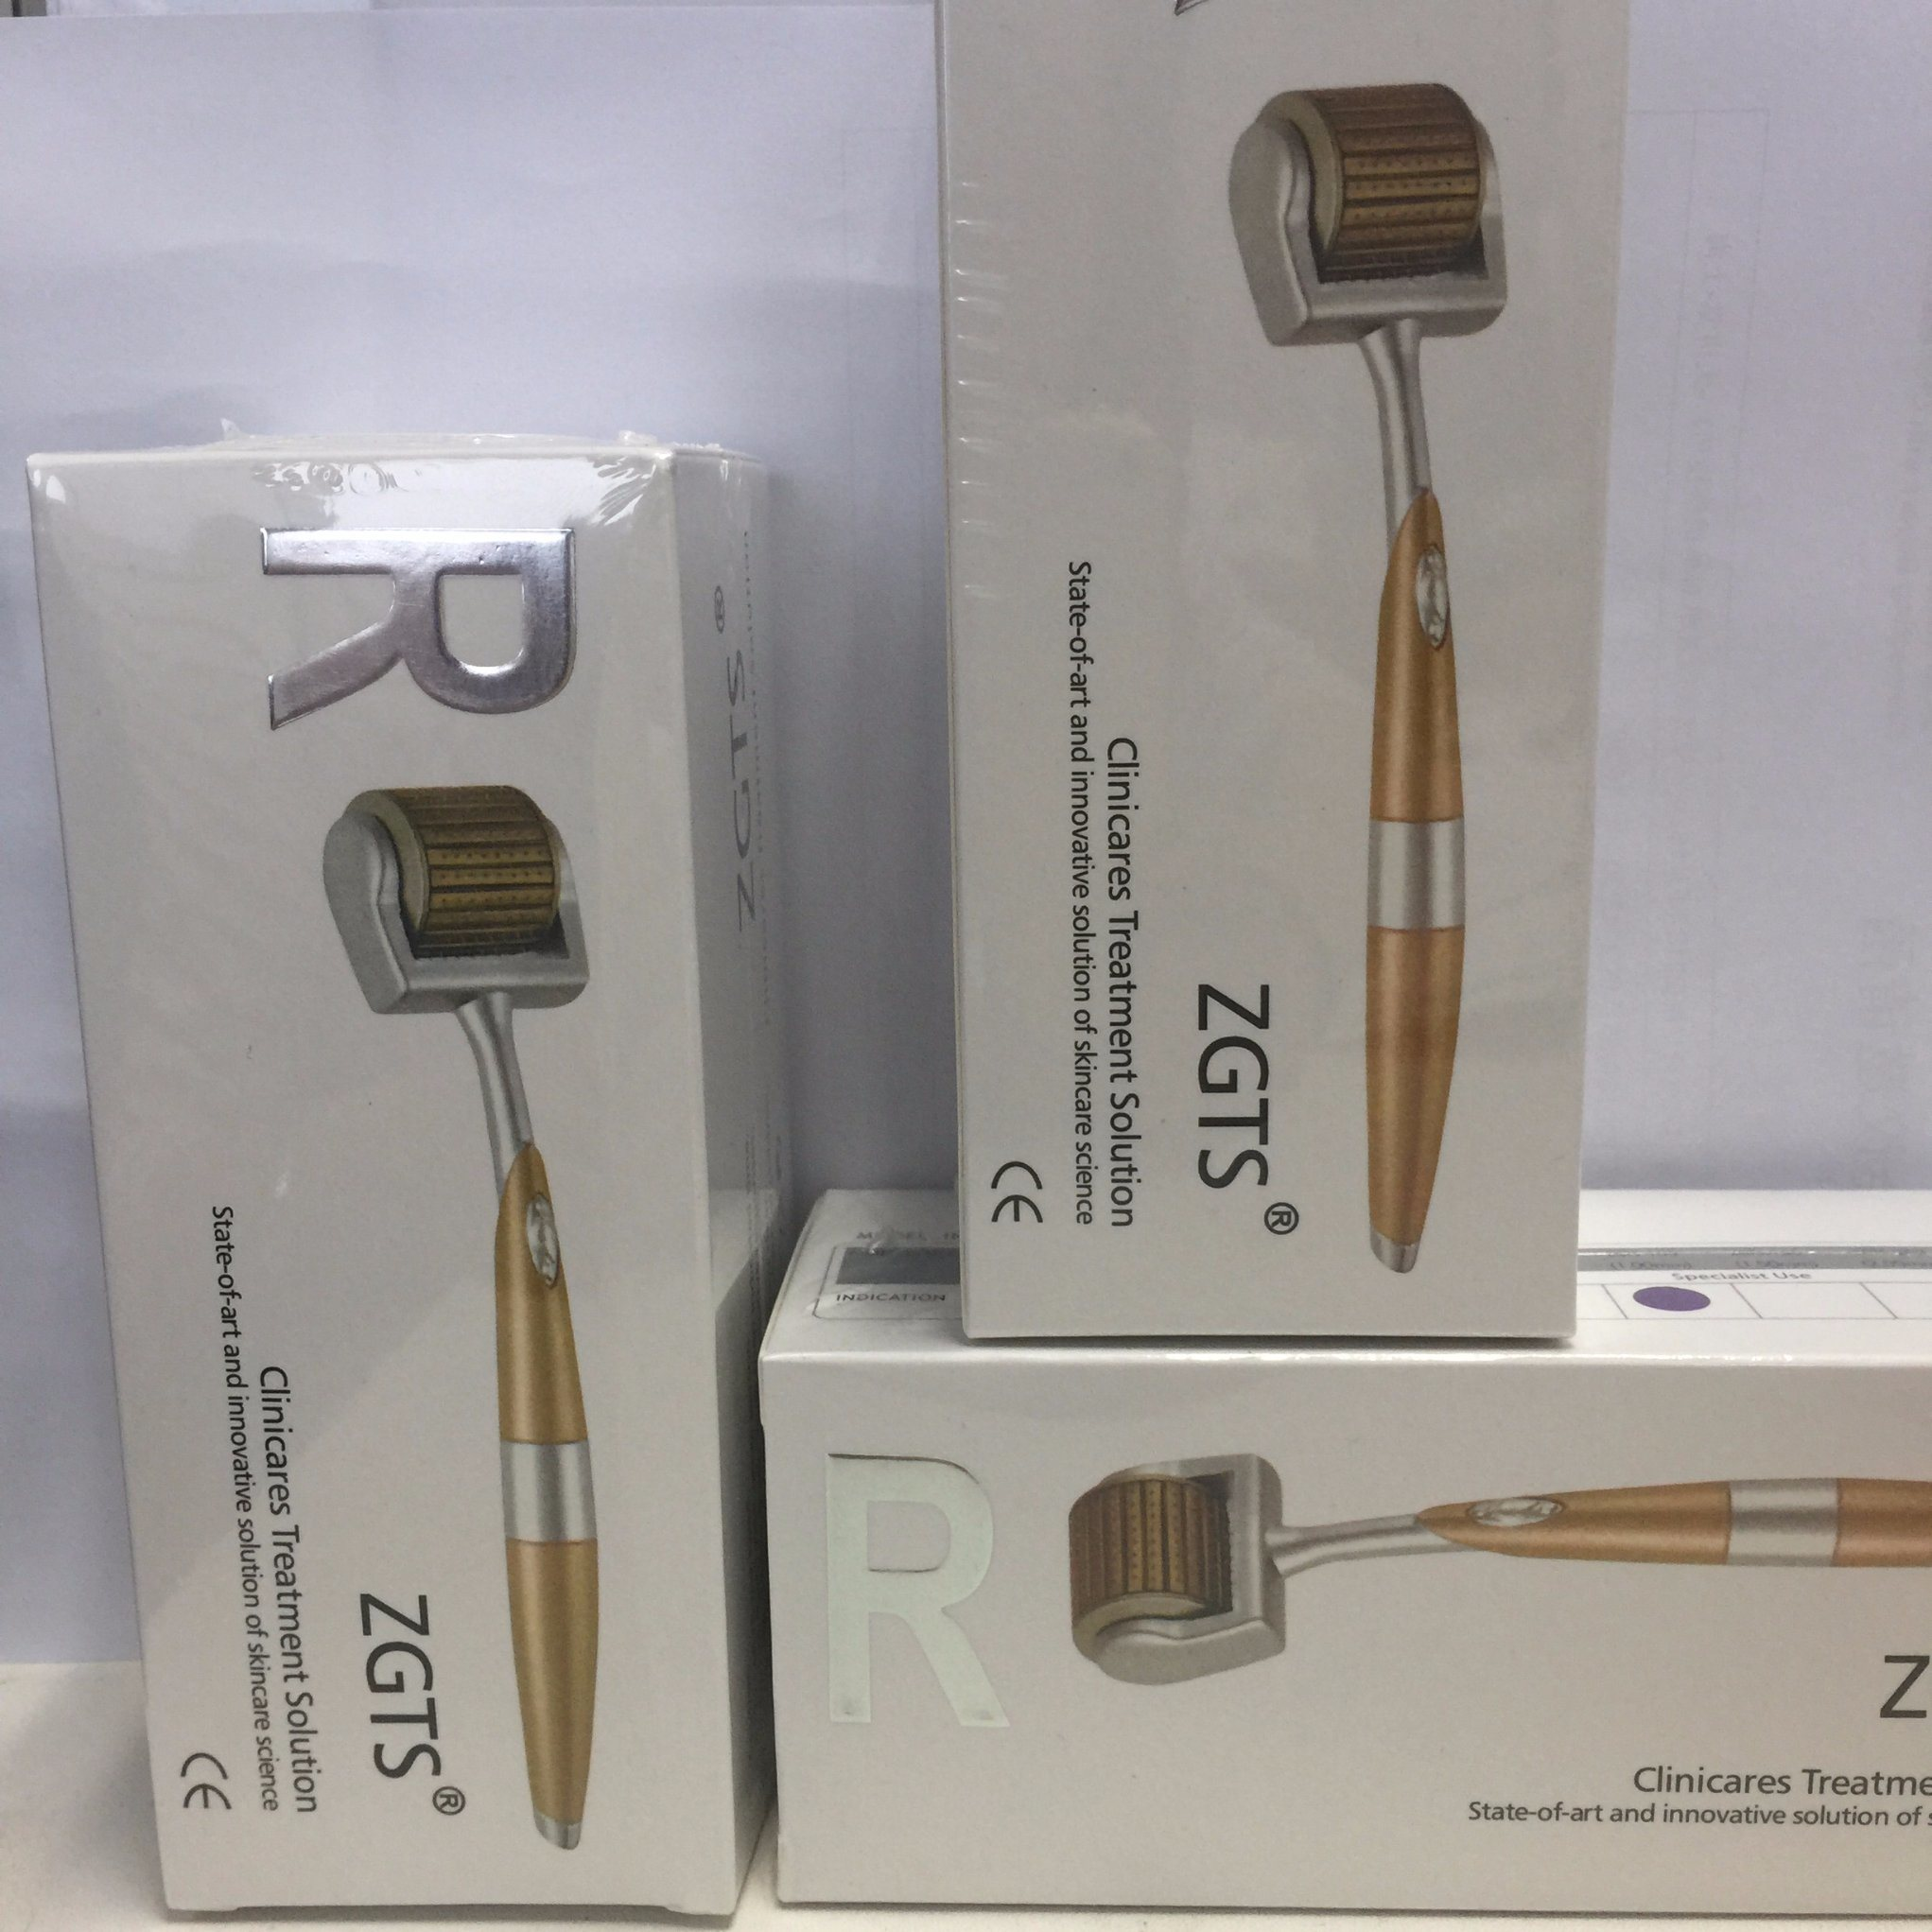 China Amazon Best Seller 192 Titanium Microneedle Roller System Dermaroller Zgts Derma With Excellent Quality Portable